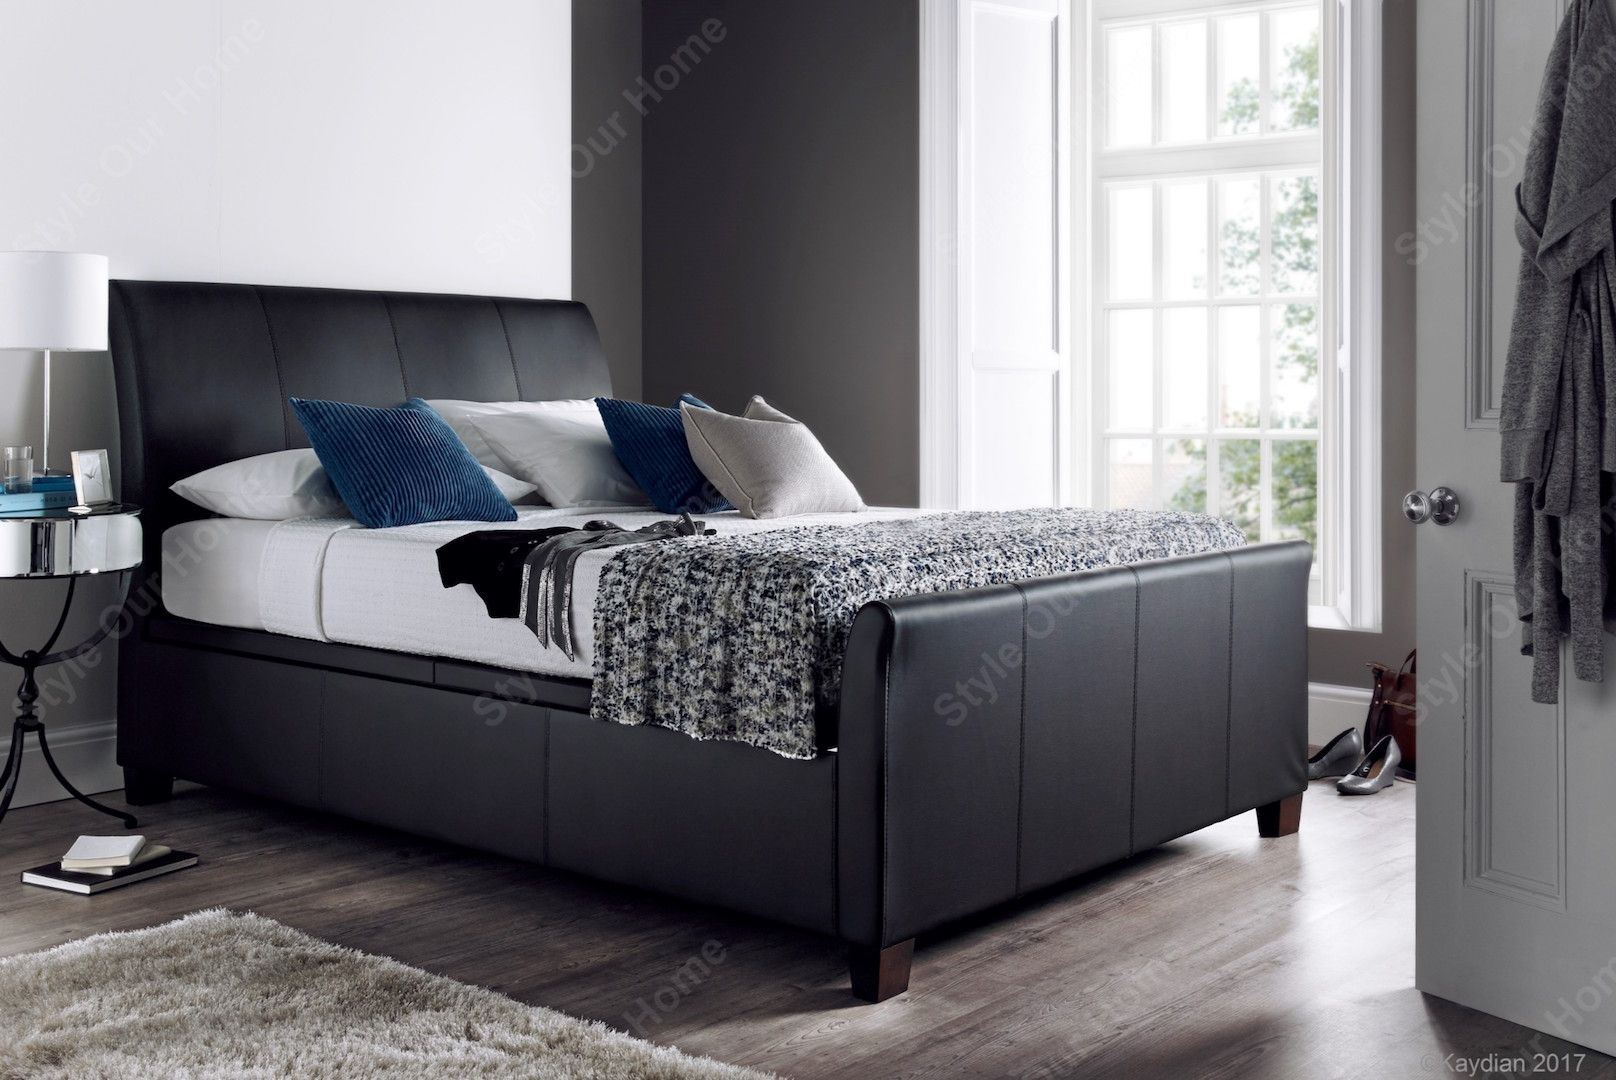 Picture of: Kaydian Allendale Ottoman Storage King Bed Black Leather Style Our Home